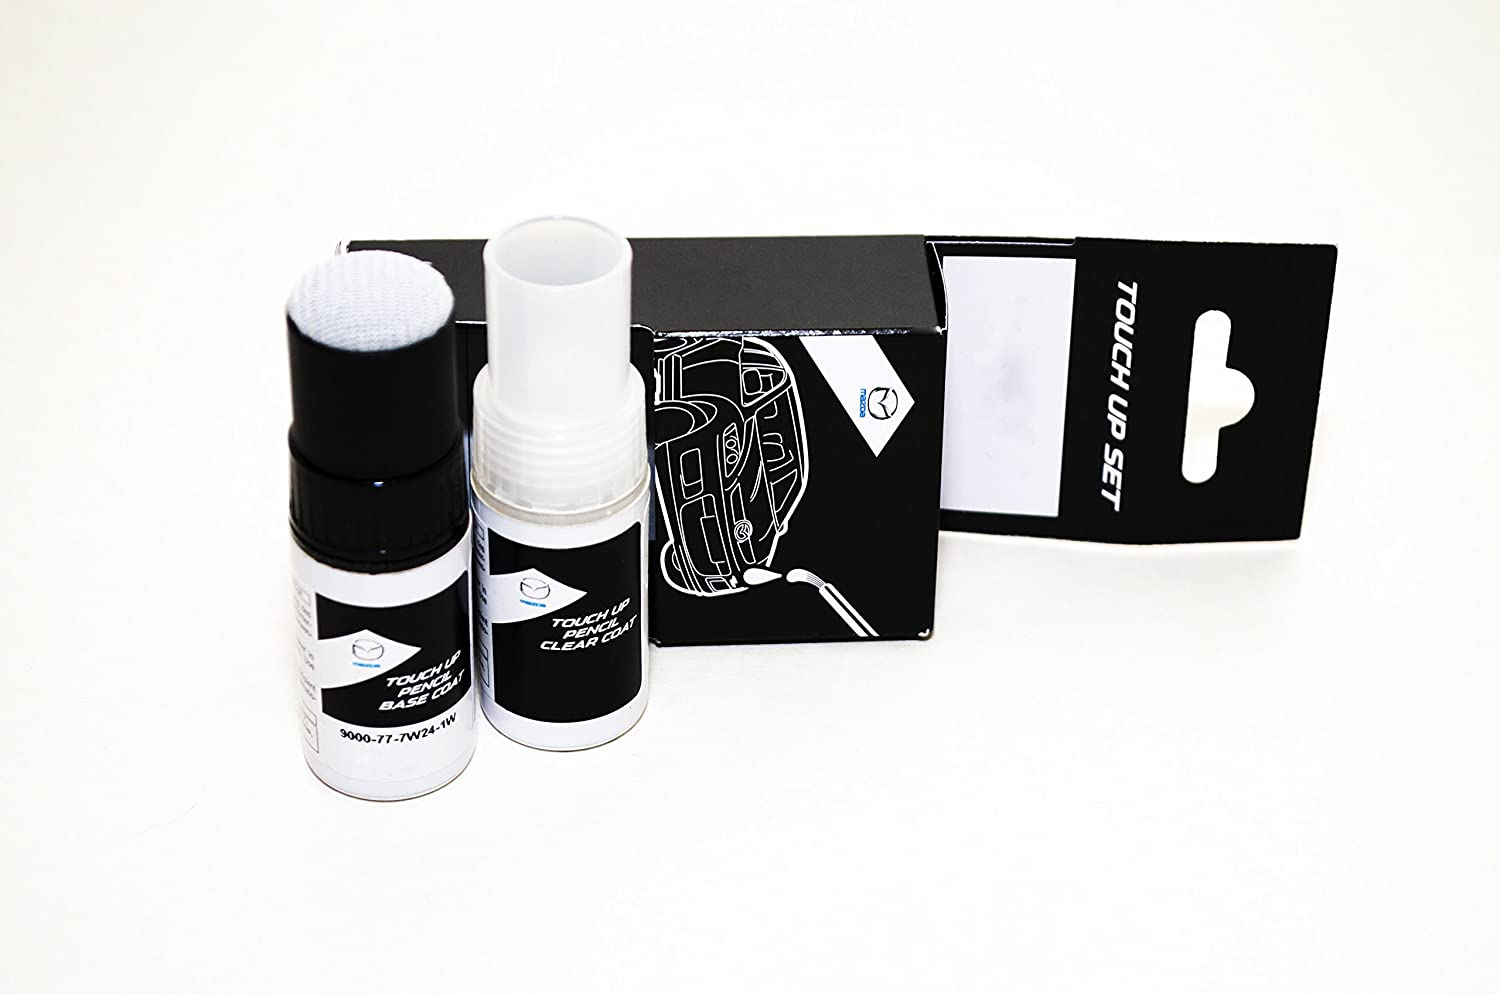 Mazda Genuine Touch-Up Paint Crystal White Mica 34K M9000777W234KS